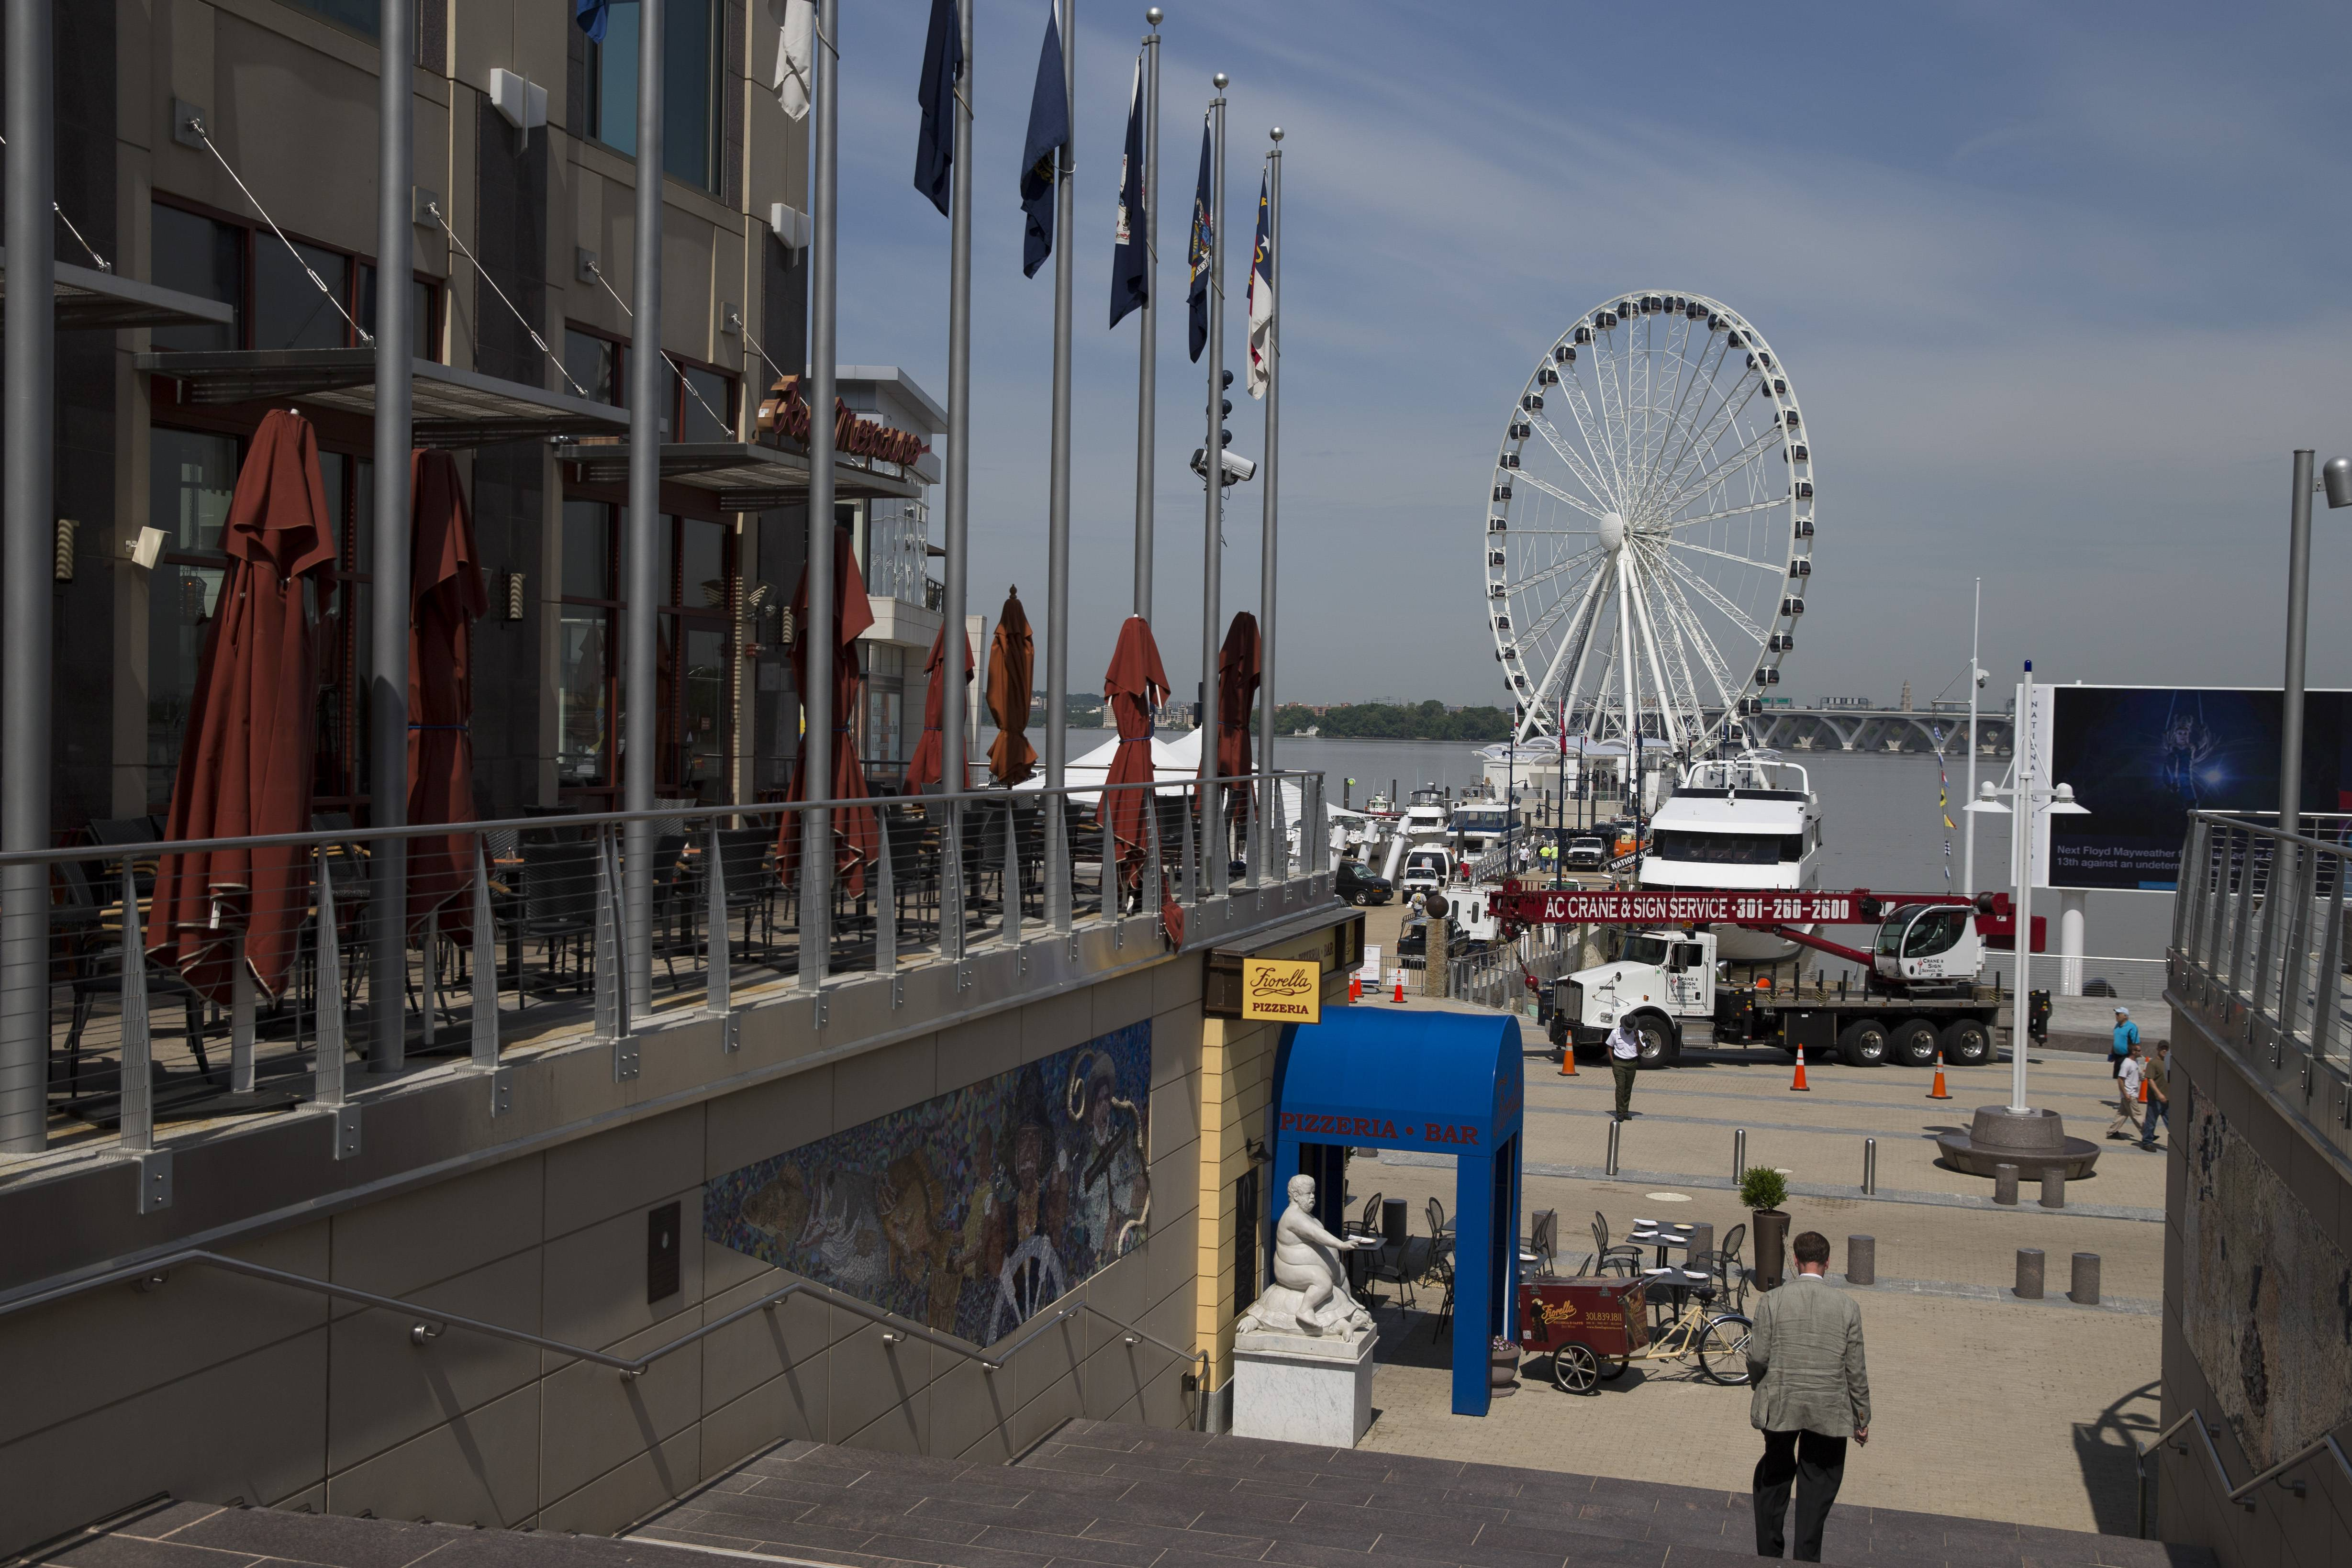 Boaters can dock for dinner and choose from more than 30 restaurants at National Harbor in Maryland.